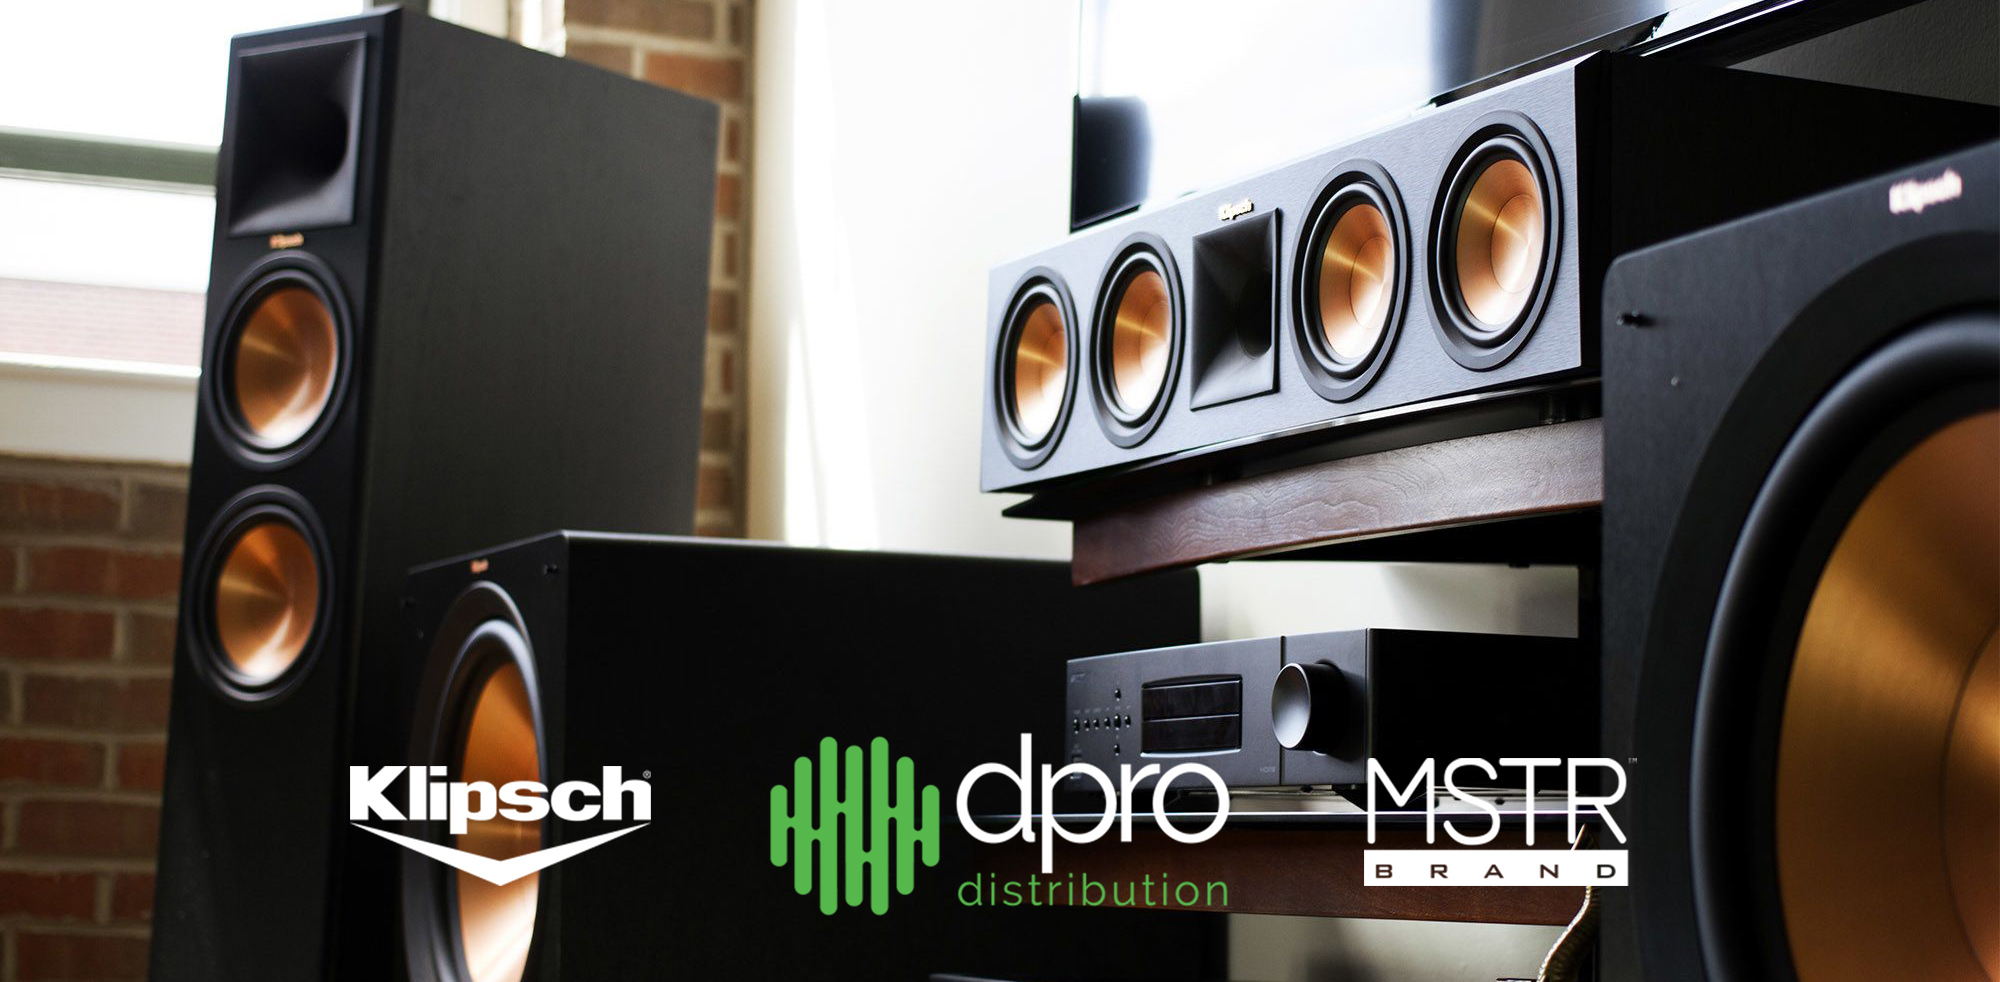 Slider1_Klipsch and MSTR Brand.jpg